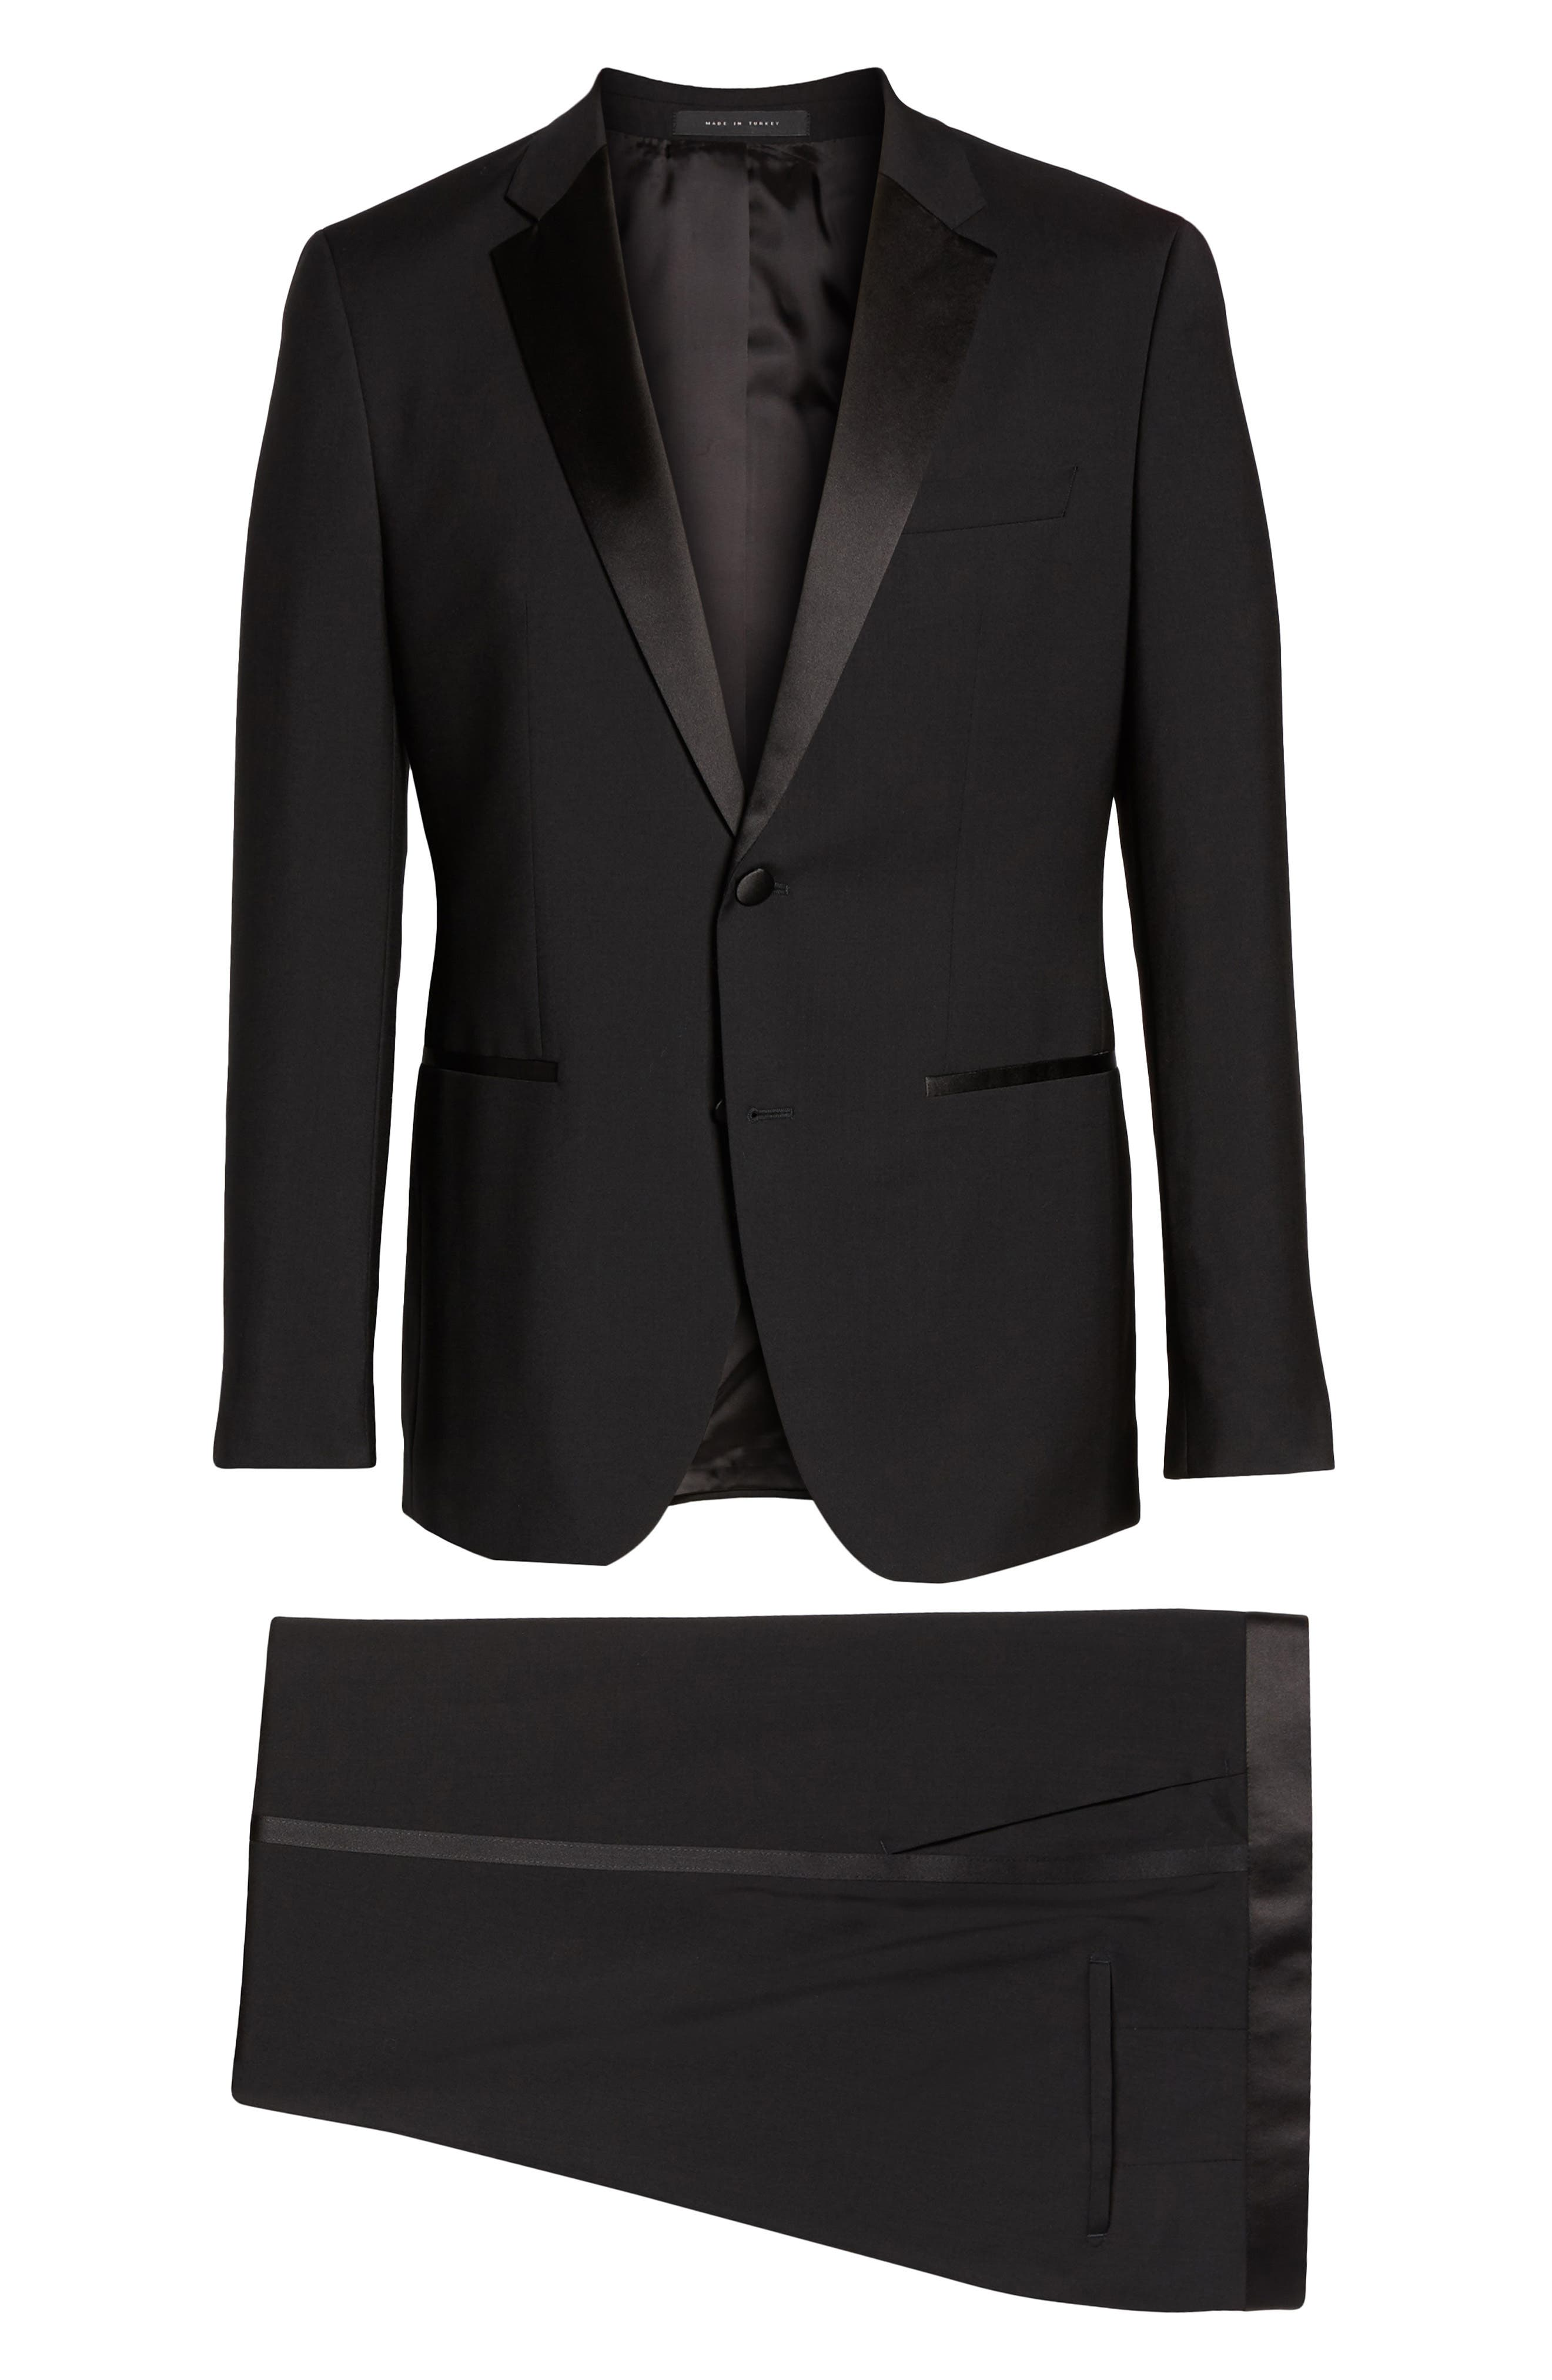 BOSS,                             The Stars/Glamour Trim Fit Wool Tuxedo,                             Alternate thumbnail 8, color,                             001